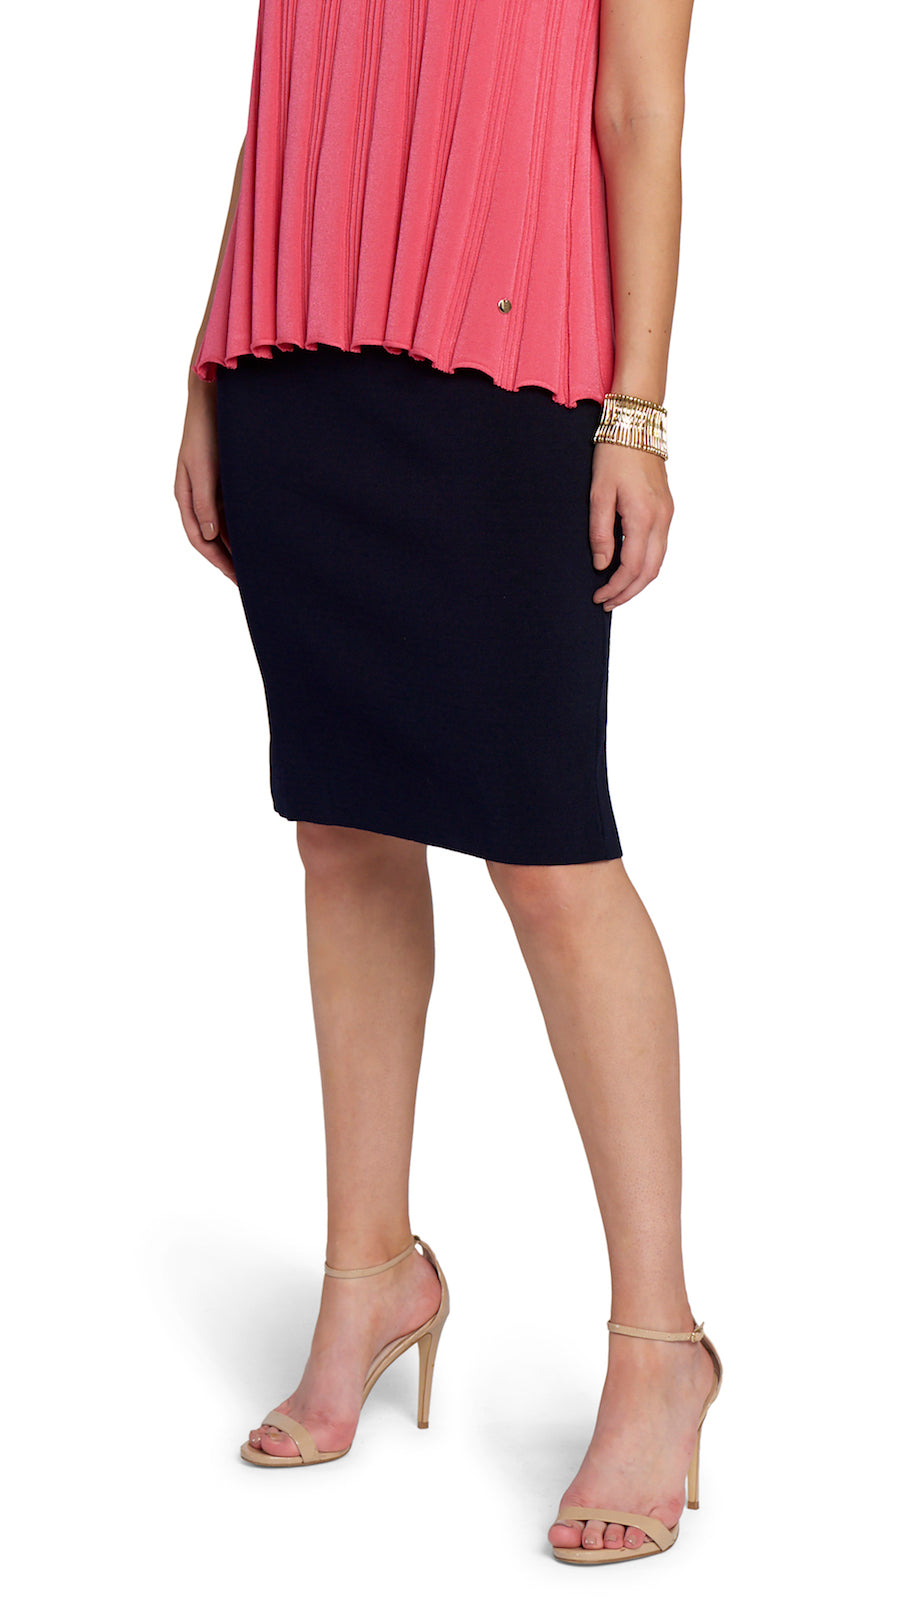 Cora Milano-Knit Pencil Skirt, Navy